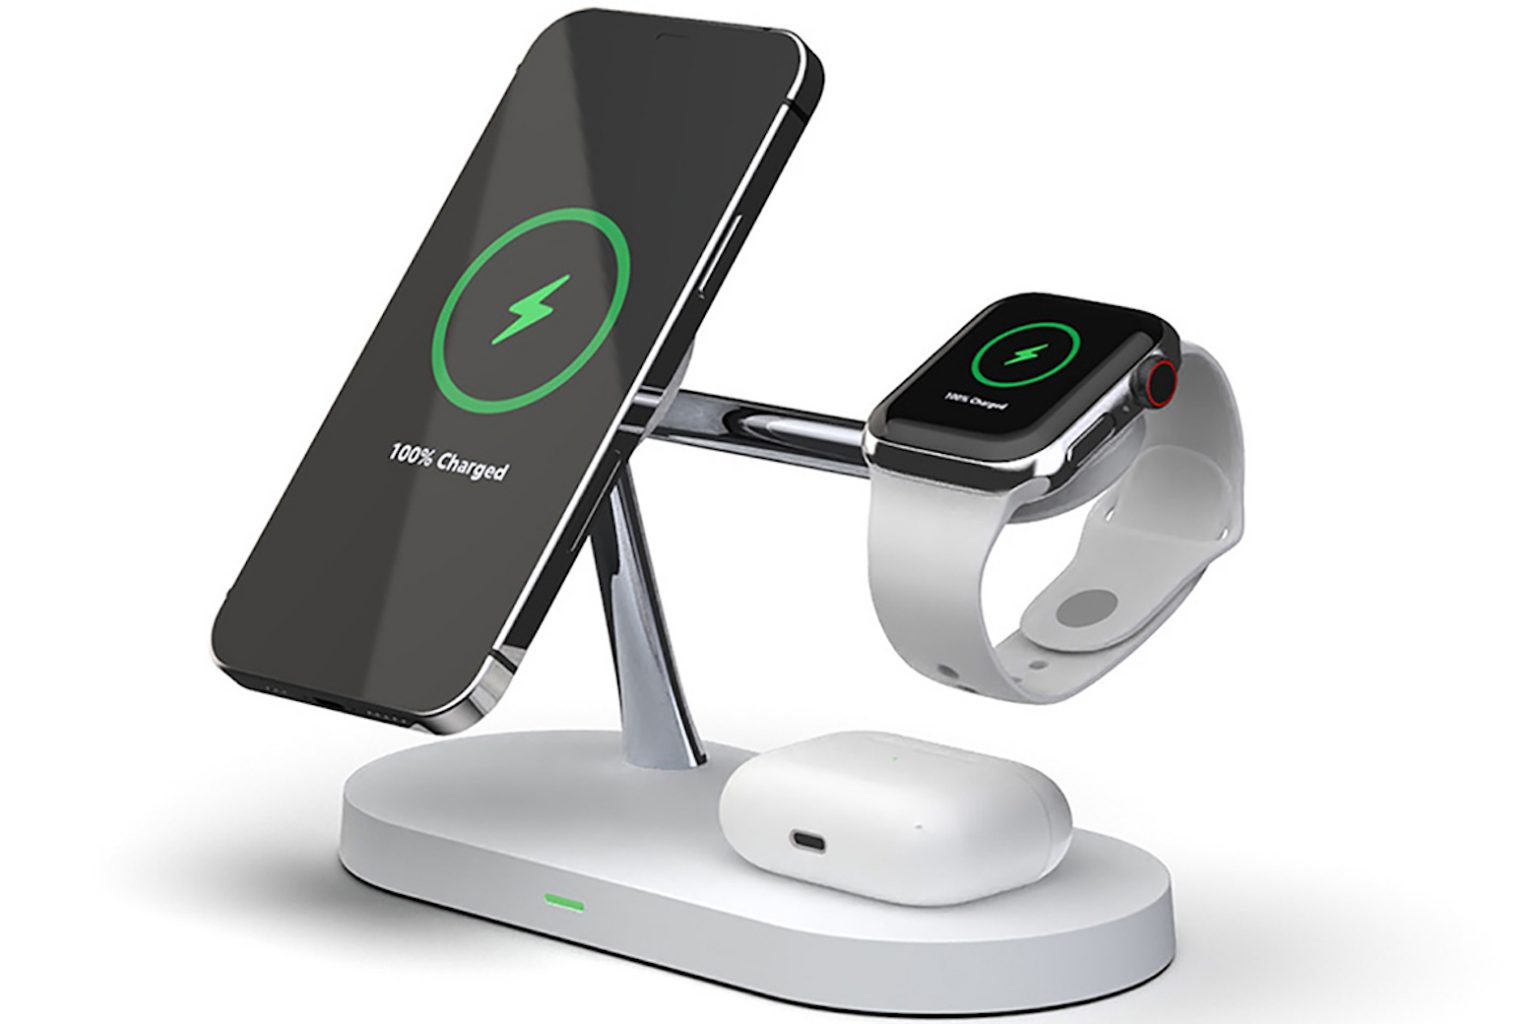 This wireless charger & lamp powers up to 4 devices at once